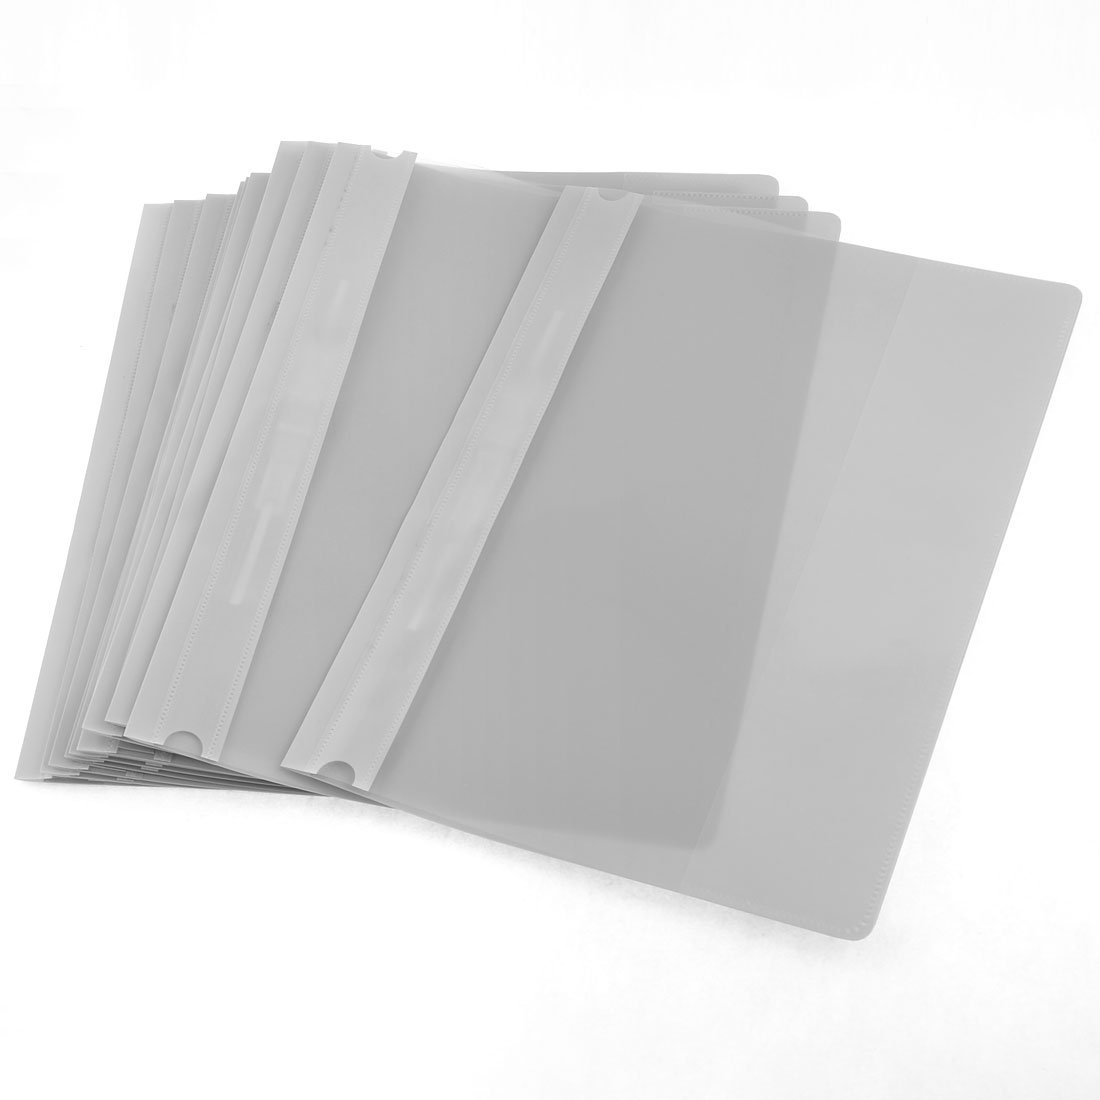 12 Pcs Size A4 Paper File Document Case Conference Folder Grey Clear